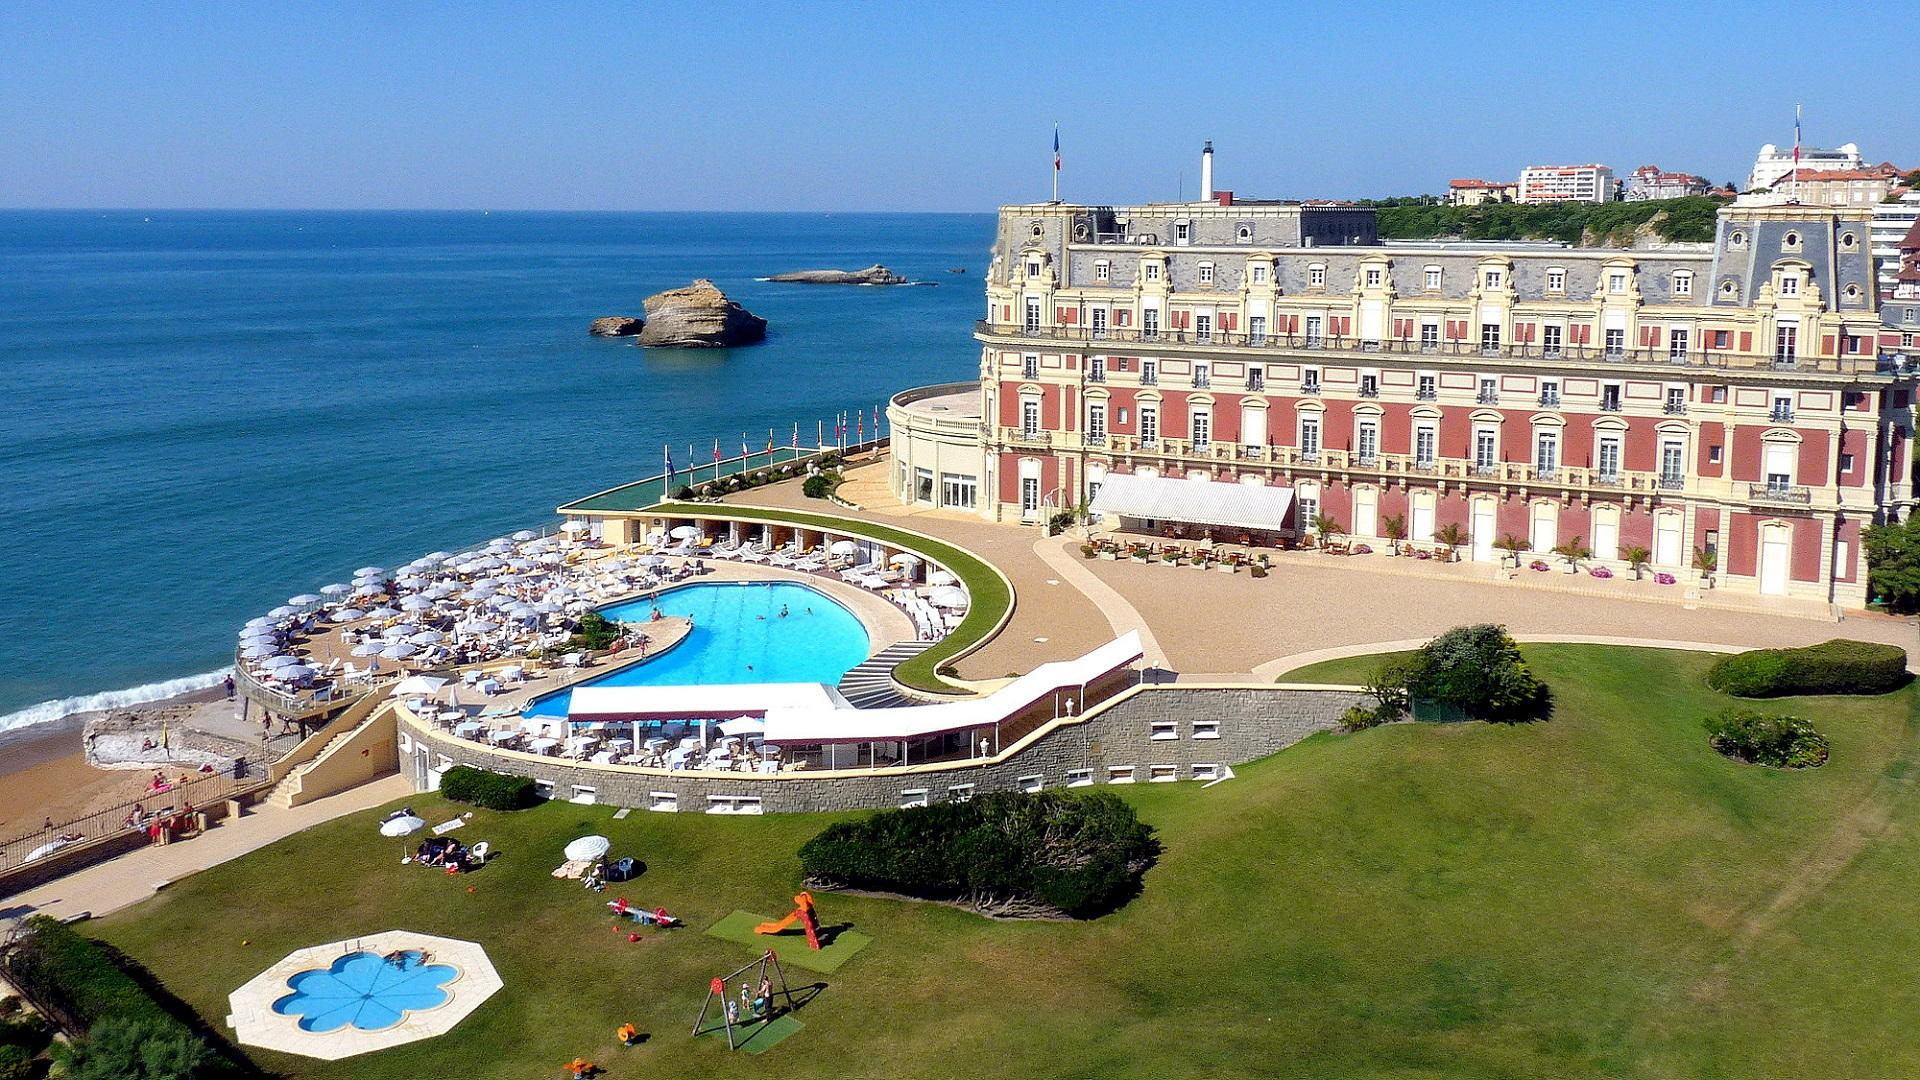 Luxury spa hotels in france 5 day spa spa hotels for Hotel france spa